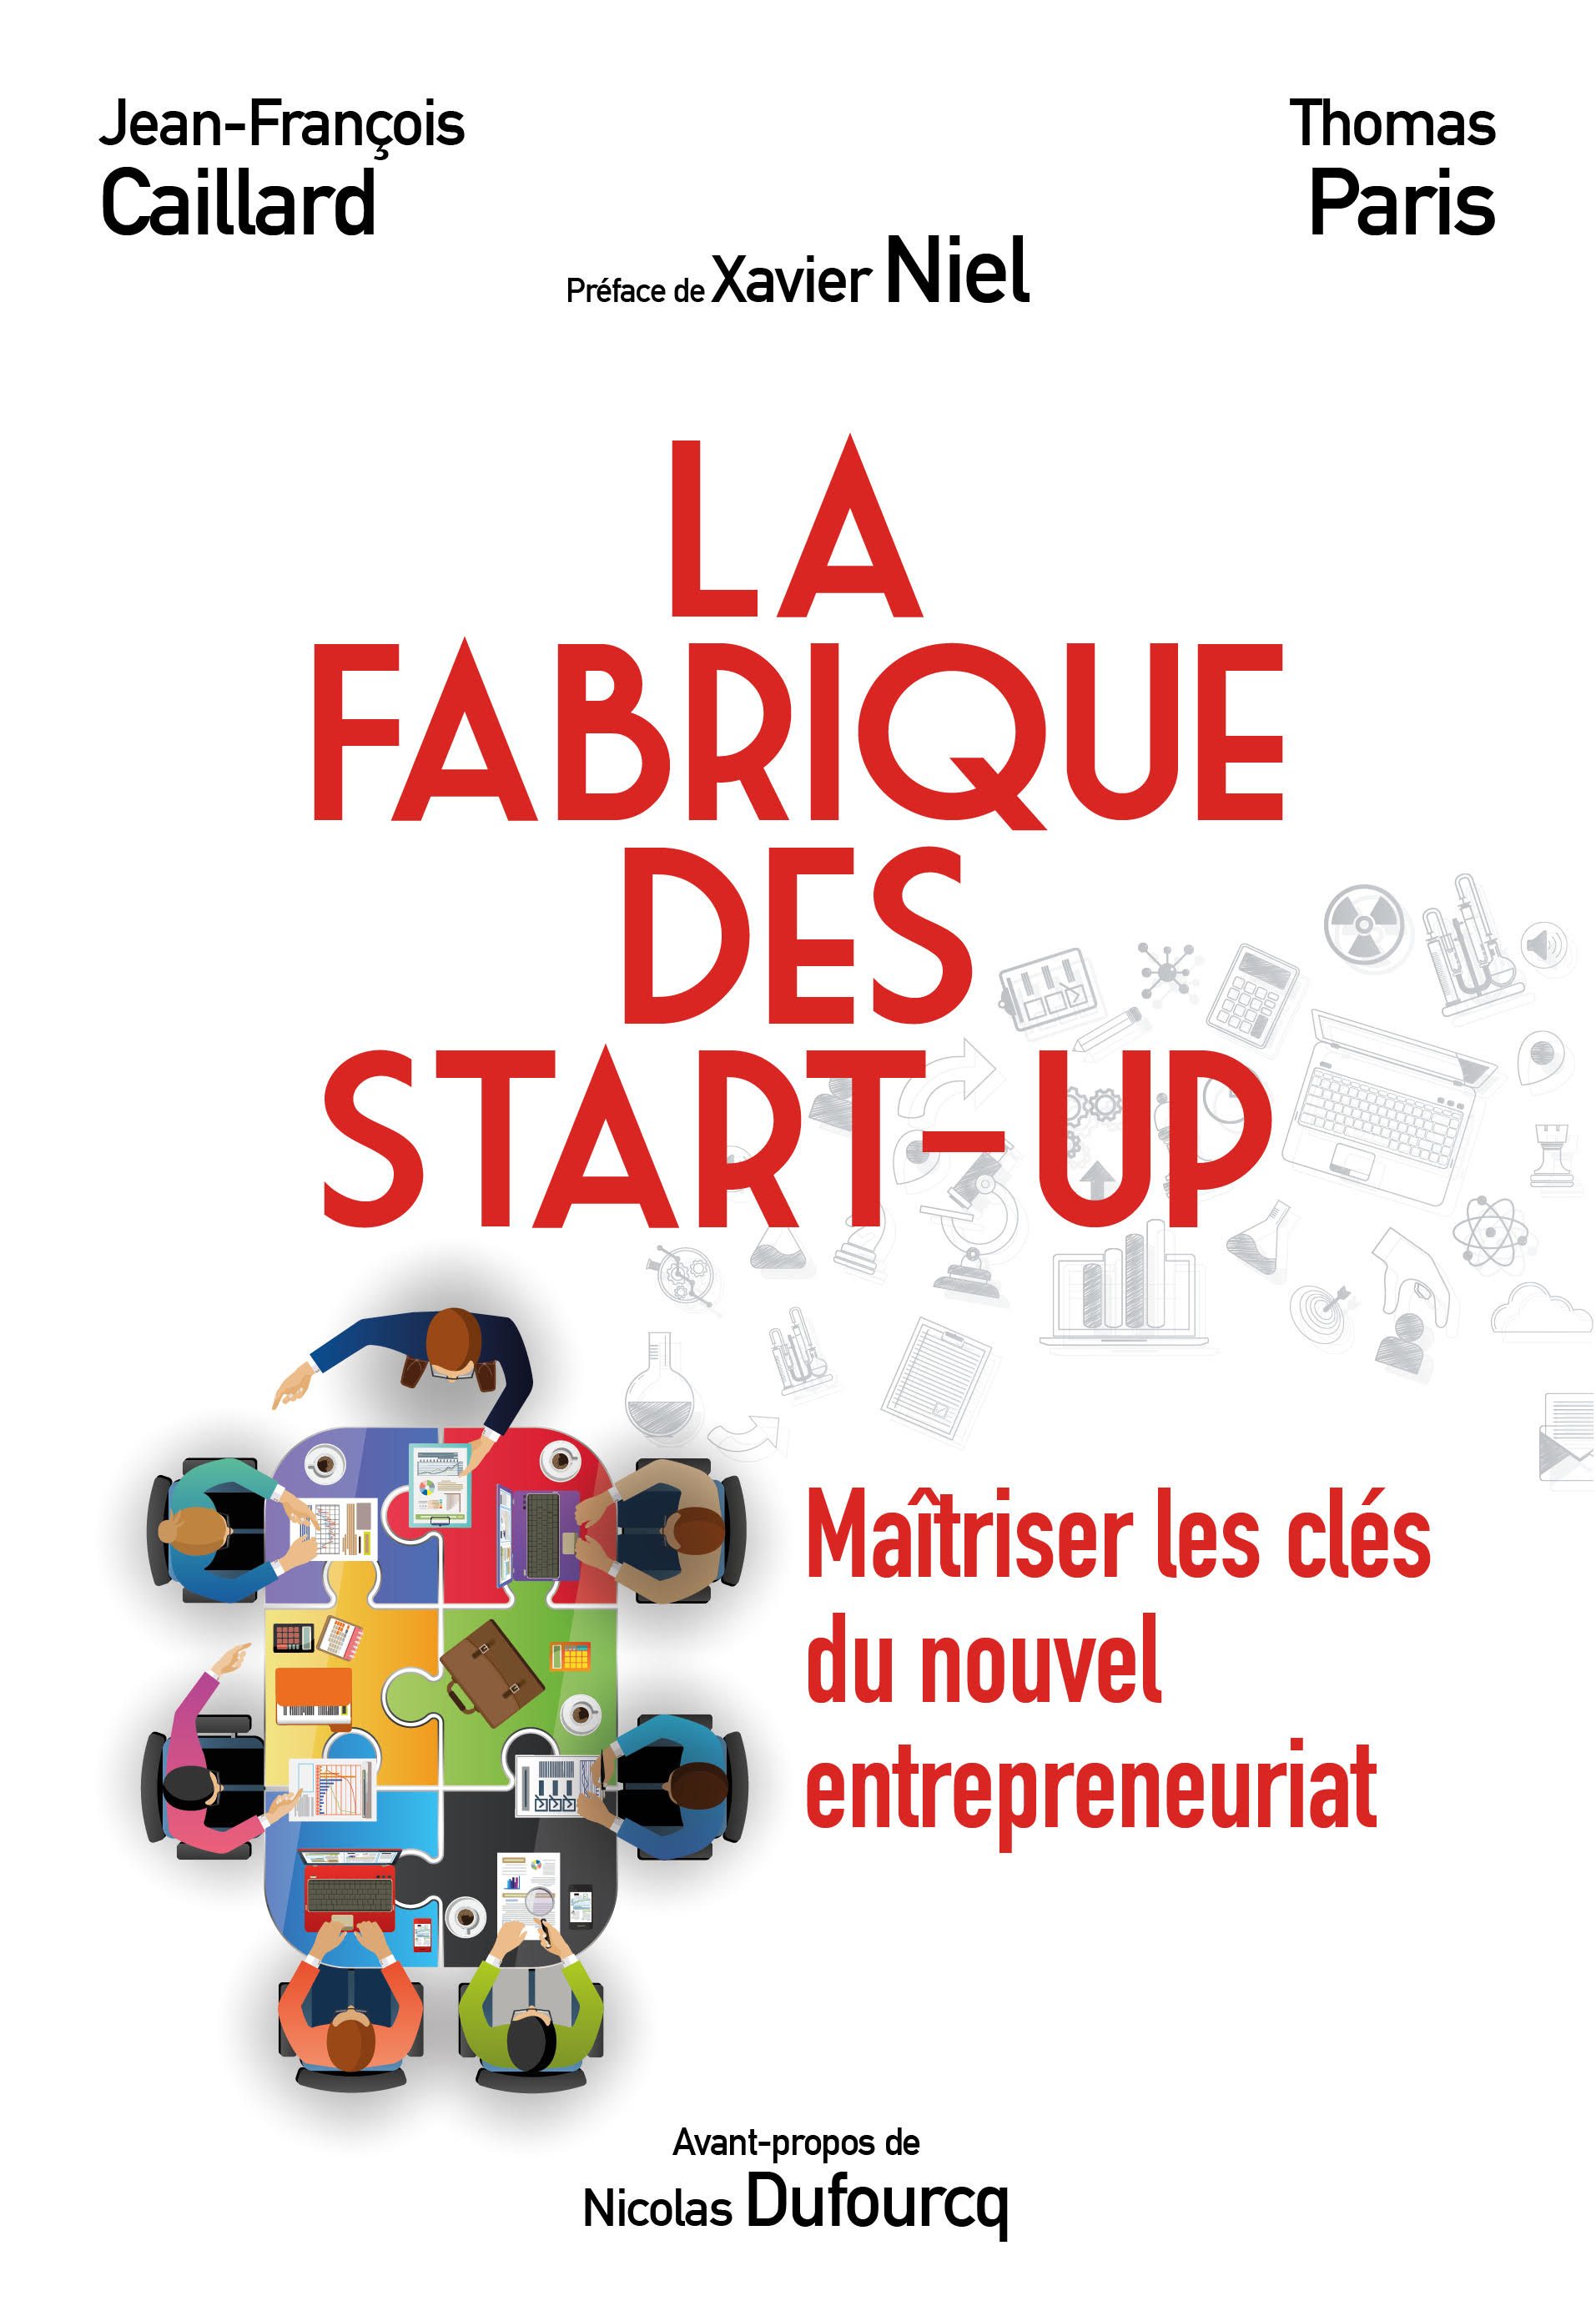 La Fabrique des start-up De Thomas Paris et Jean-François Caillard - Pearson